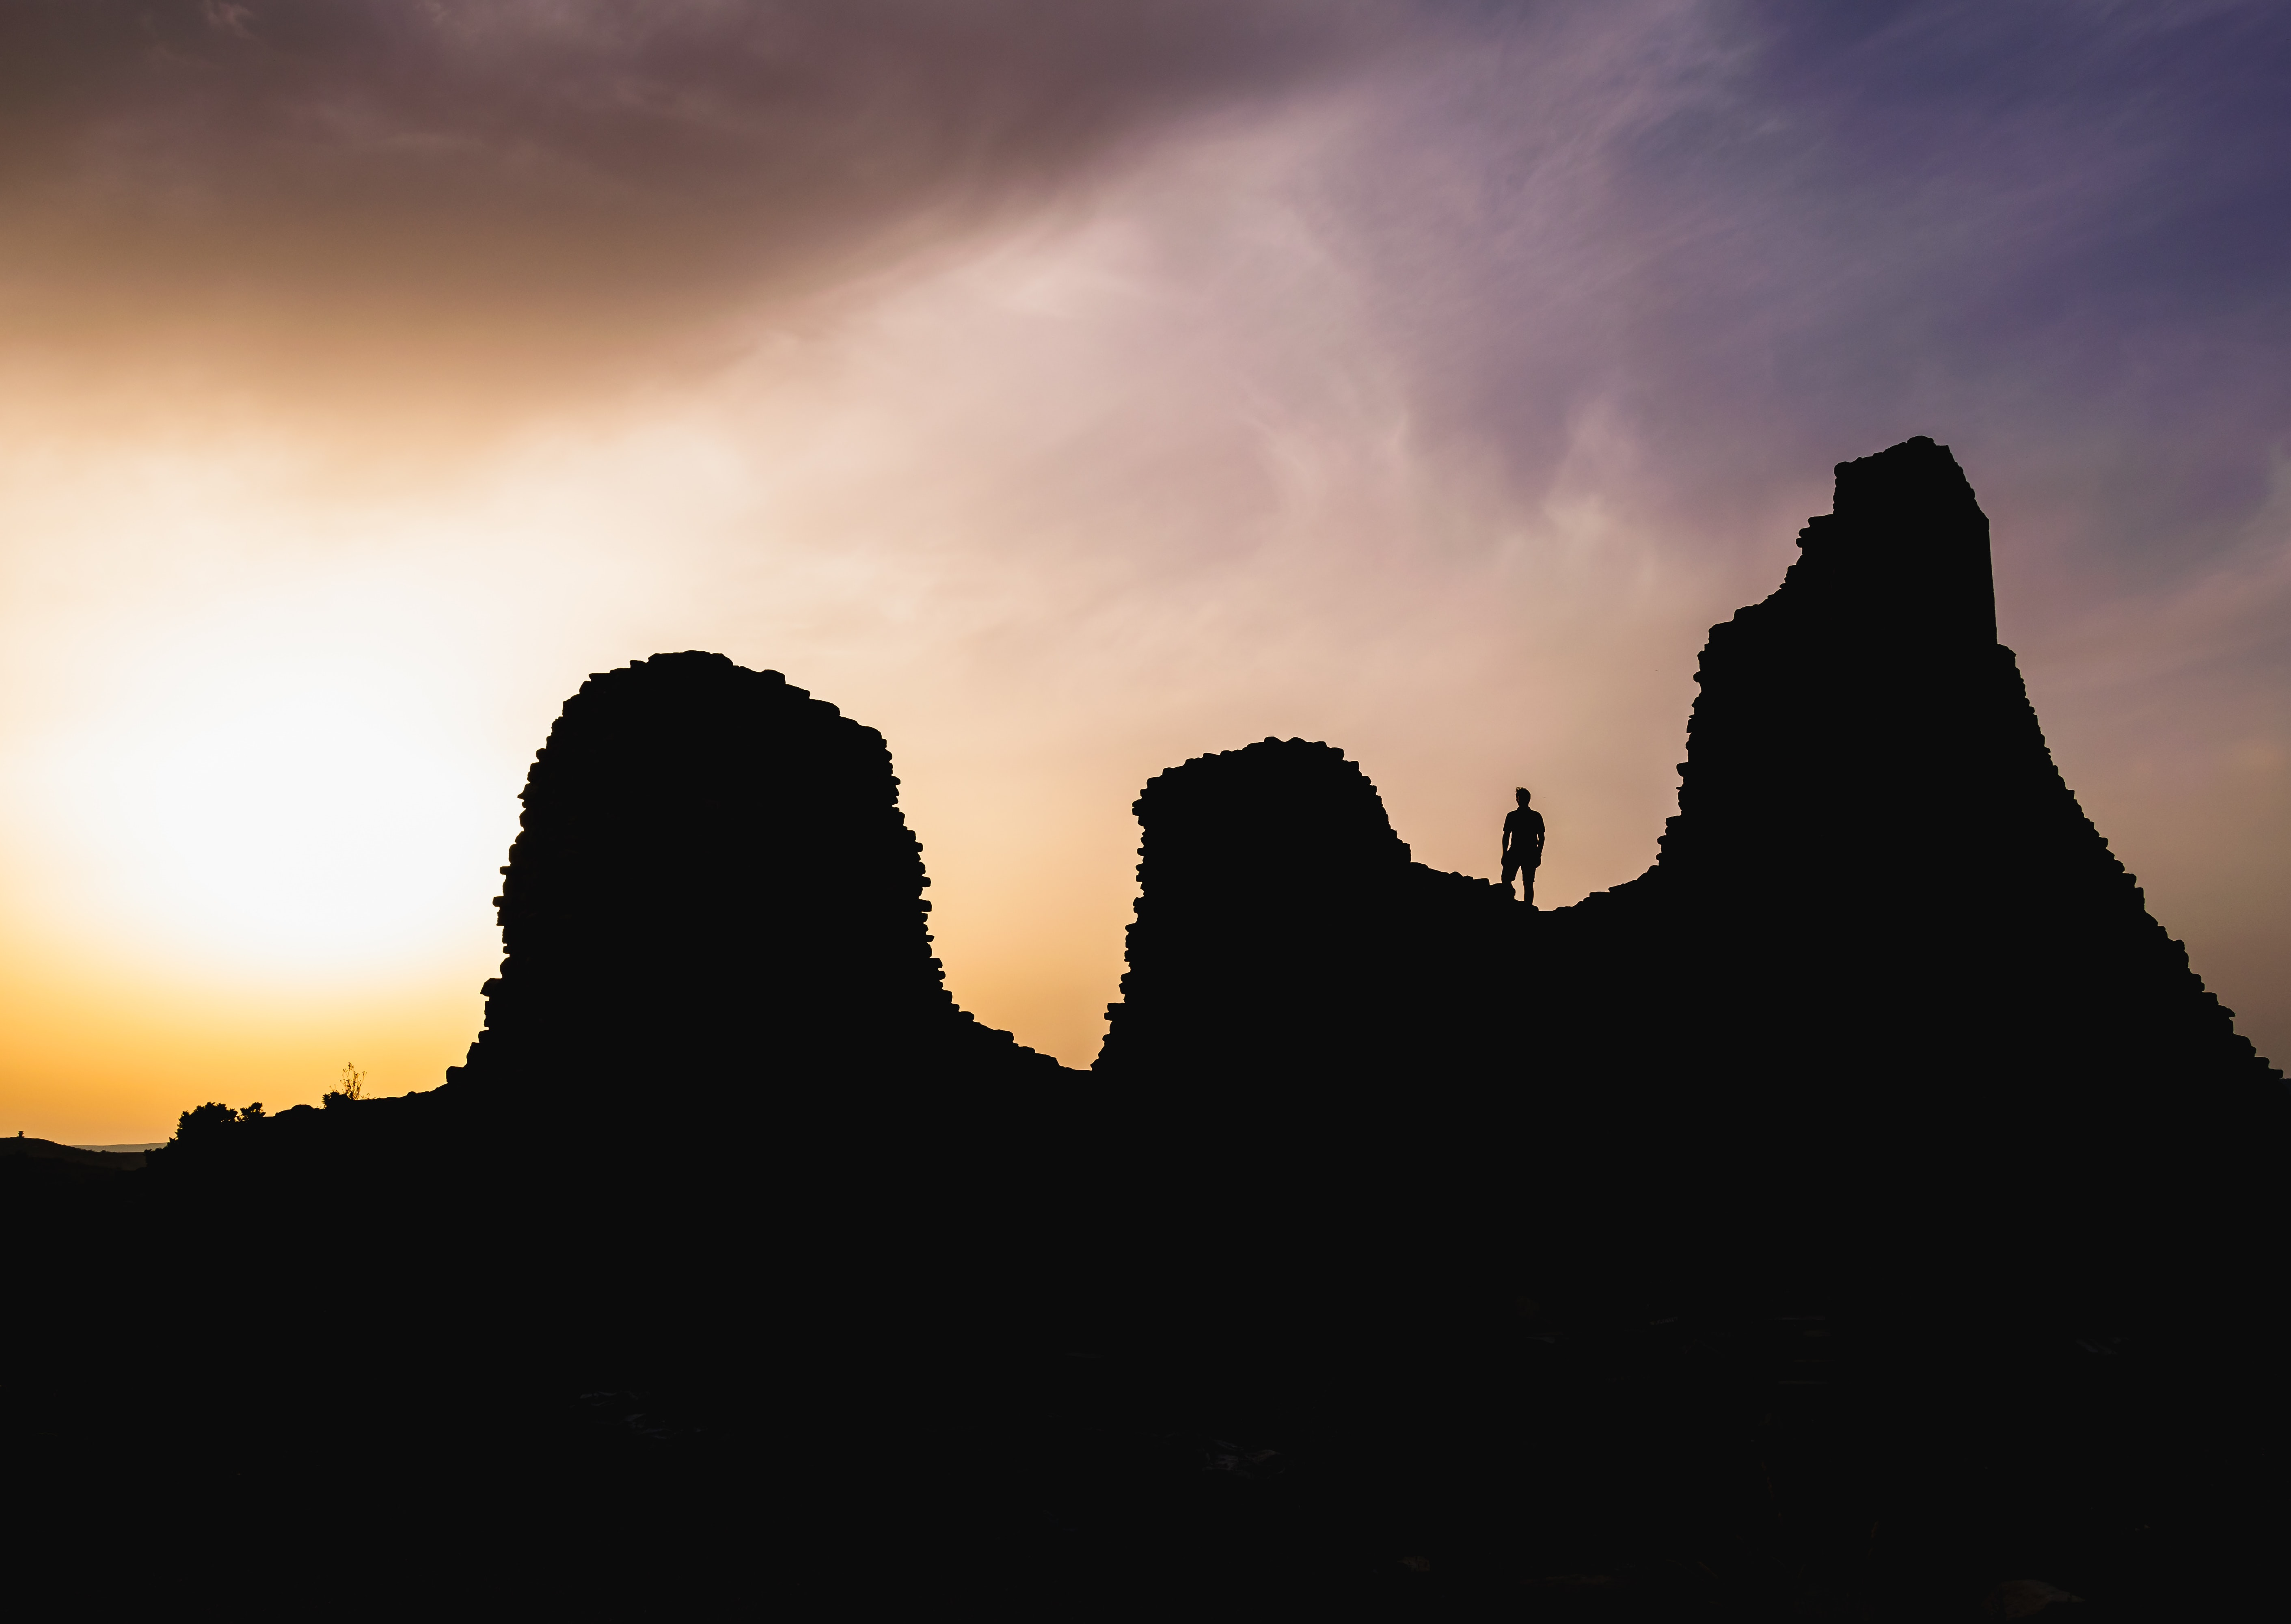 silhouette photography of person standing on cliff